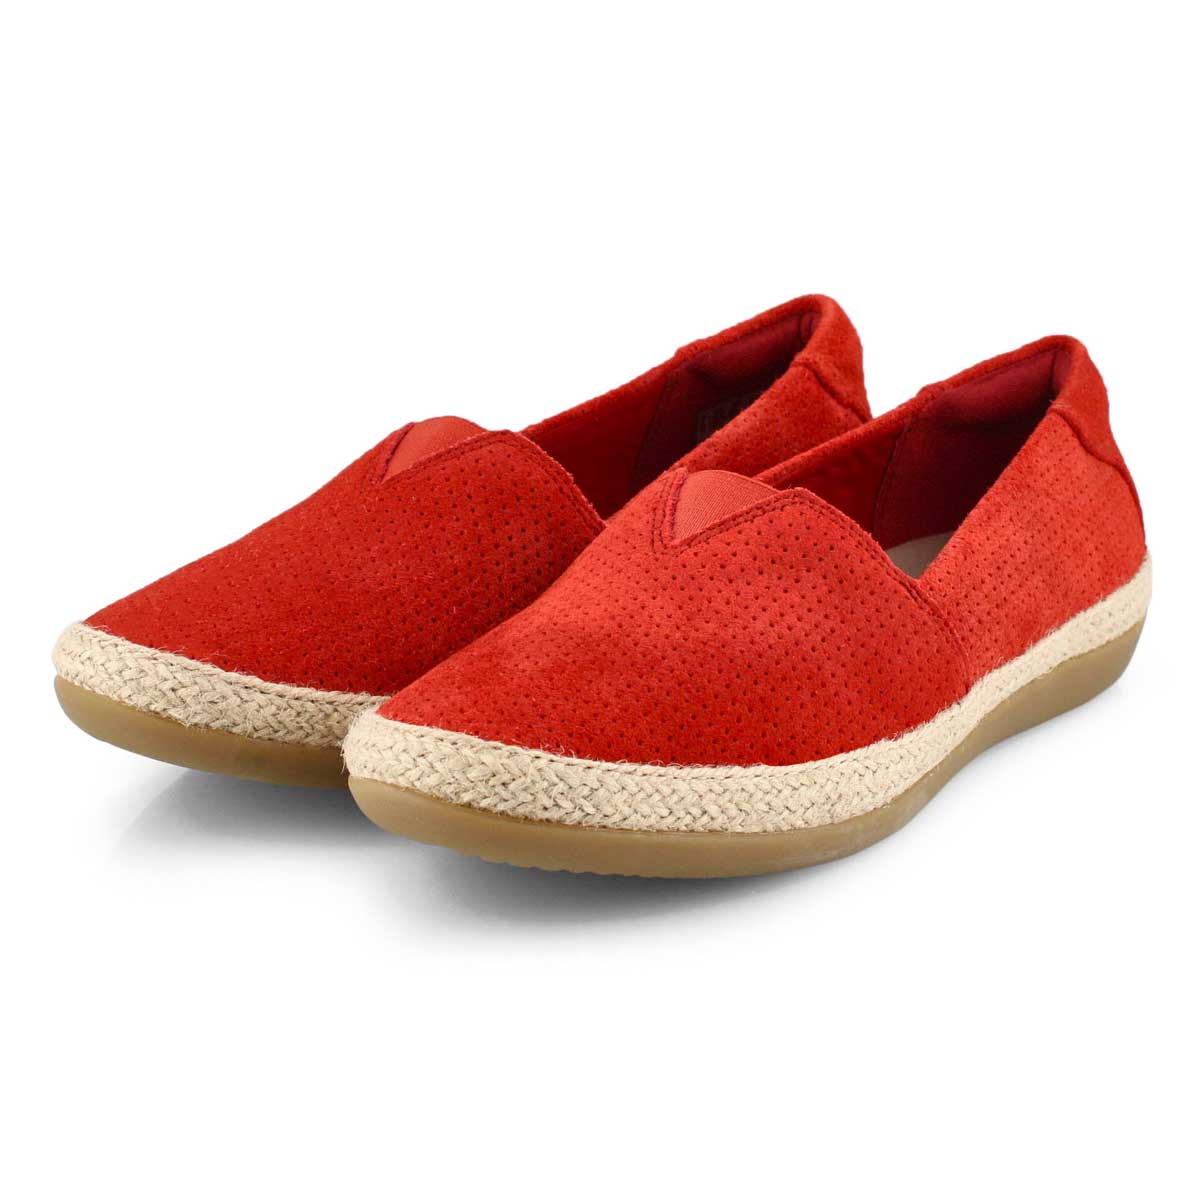 Lds Danelly Sky red slip on